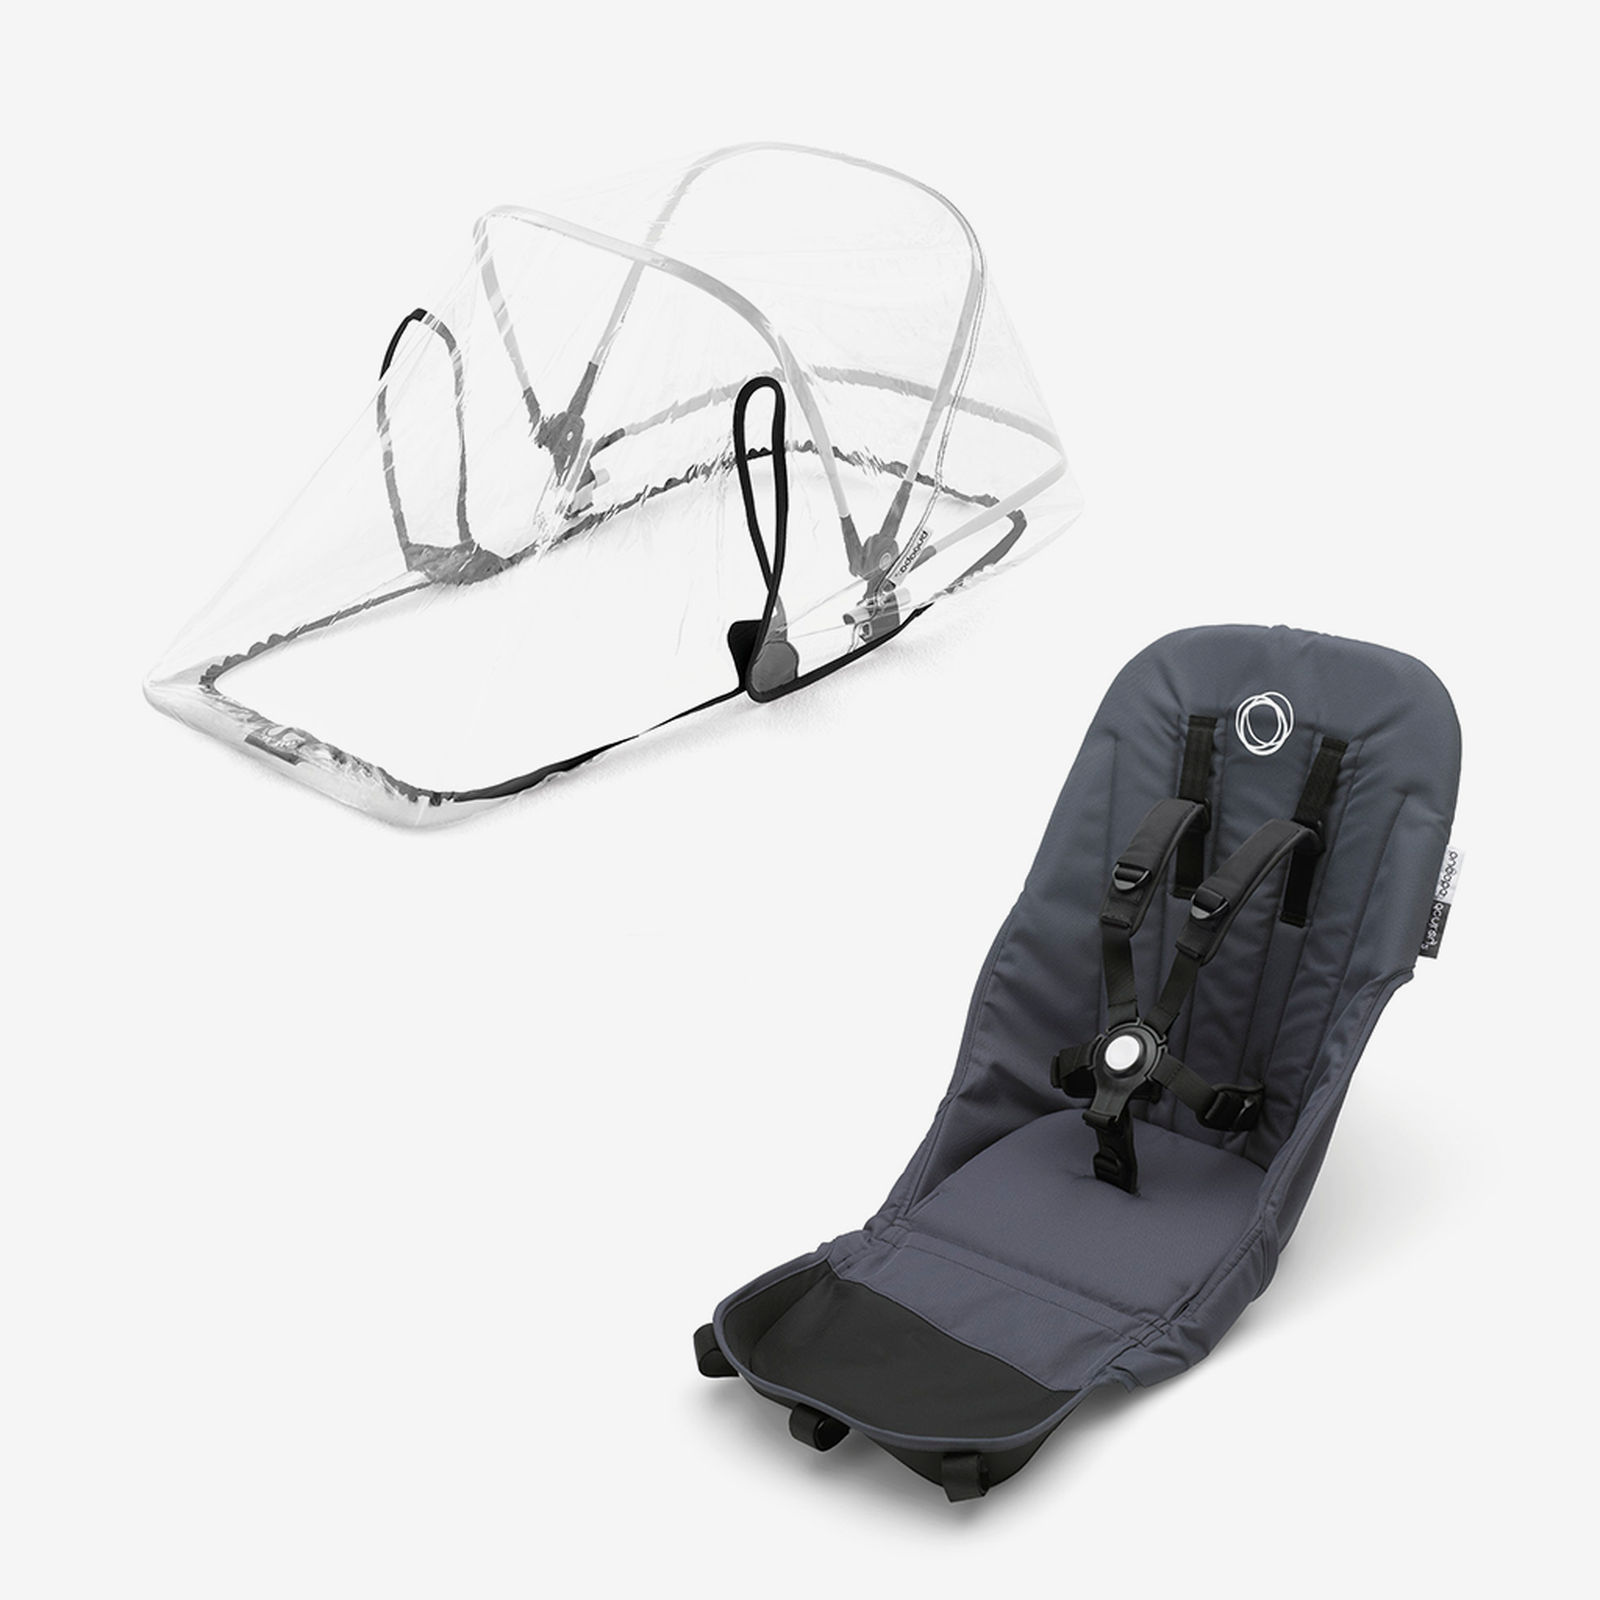 Bugaboo Donkey 2 duo fabric set